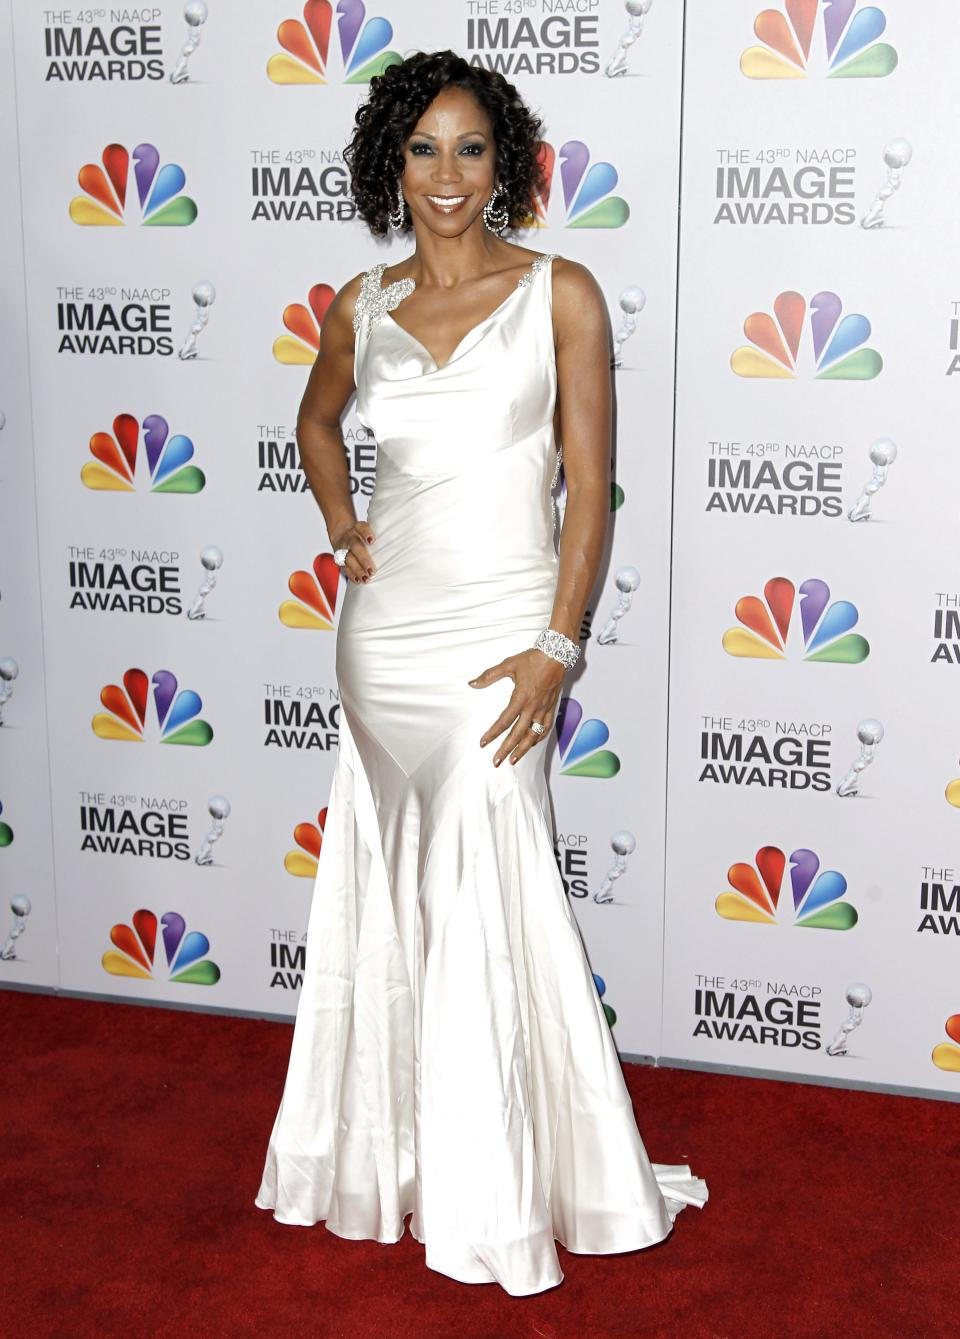 Holly Robinson Peete arrives at the 43rd NAACP Image Awards on Friday, Feb. 17, 2012, in Los Angeles. (AP Photo/Matt Sayles)